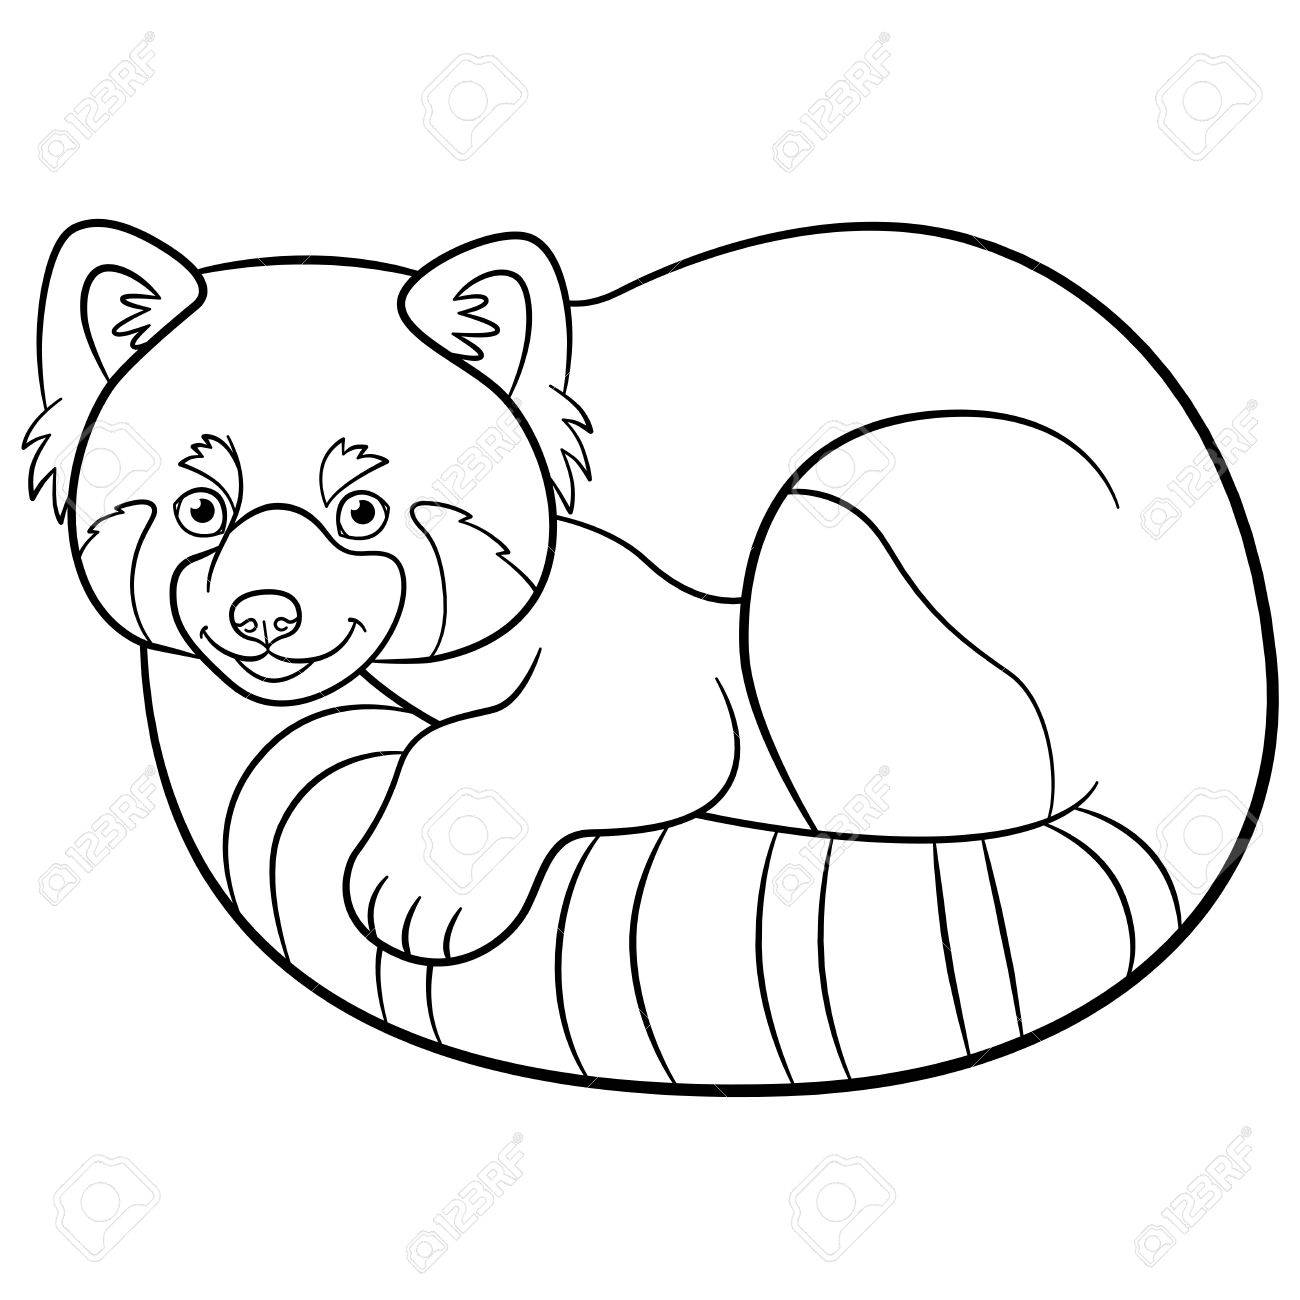 1300x1300 Coloring Pages. Little Cute Red Panda Smiles. Royalty Free